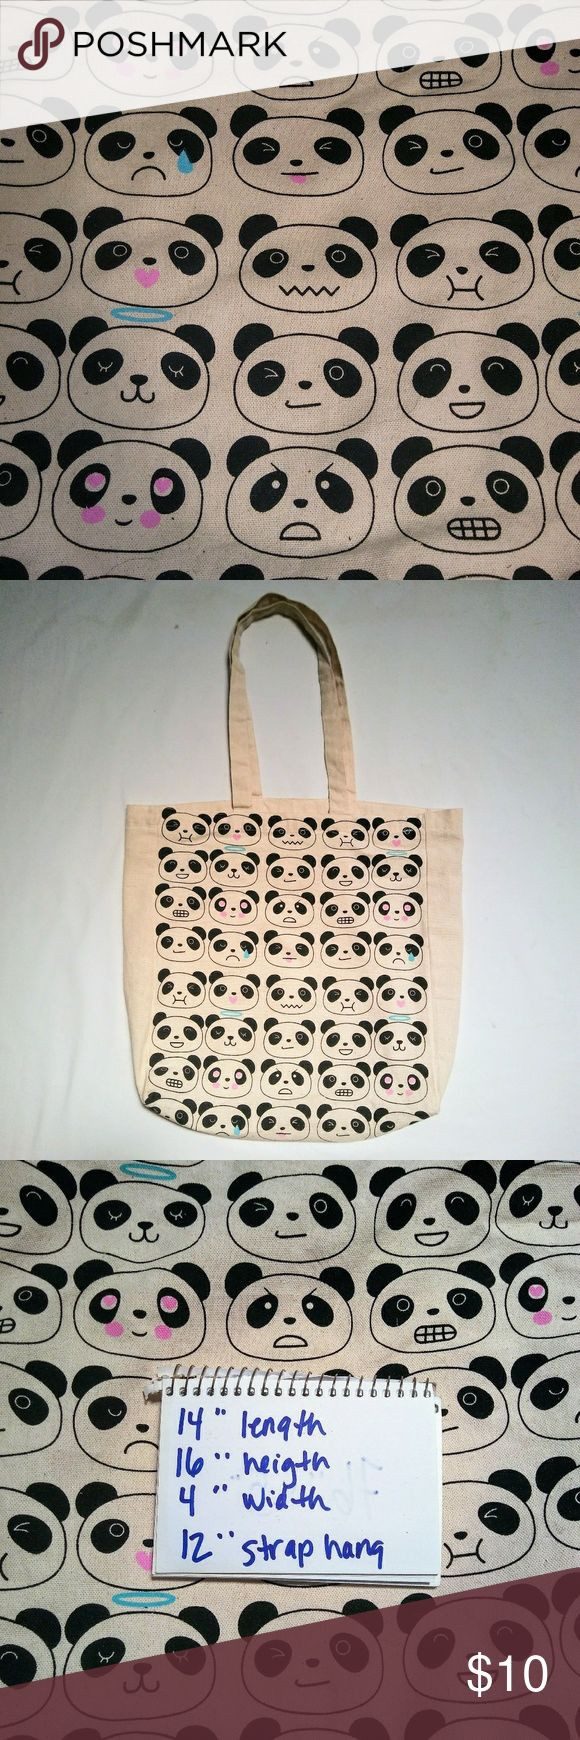 PANDA Emoji Canvas Tote Bag Off-White Cotton Canvas Tote Bag with Adorable Panda Bear Emoji Pattern.  In excellent used condition. From a smoke free home. Make an offer! BUNDLE & Automatically Get 20% Off on 2+ Items.  New Feature Alert: Bundle one or more items and I'll make you a customized awesome offer! Just bundle and wait for my offer... Up to 40% off - the bigger the bundle the bigger the savings! *2017 SUGGESTED USER* Vintage Bags Totes